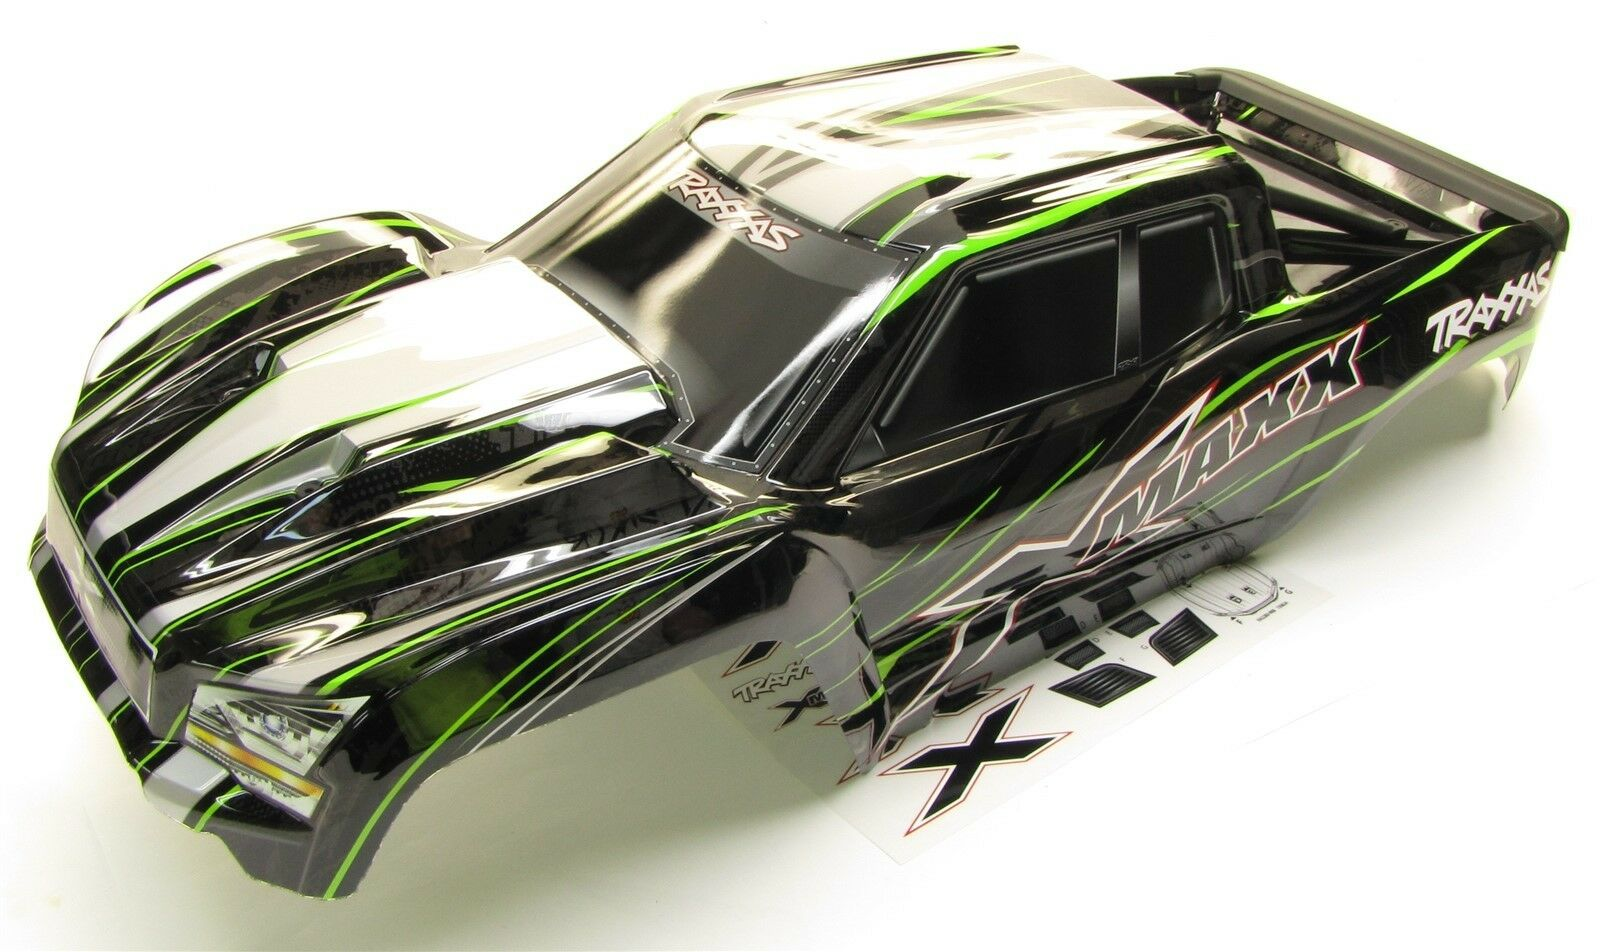 X-MAXX corpo cover Shell (verde Factory Painted ProGraphics nuovo Traxxas 77086-4